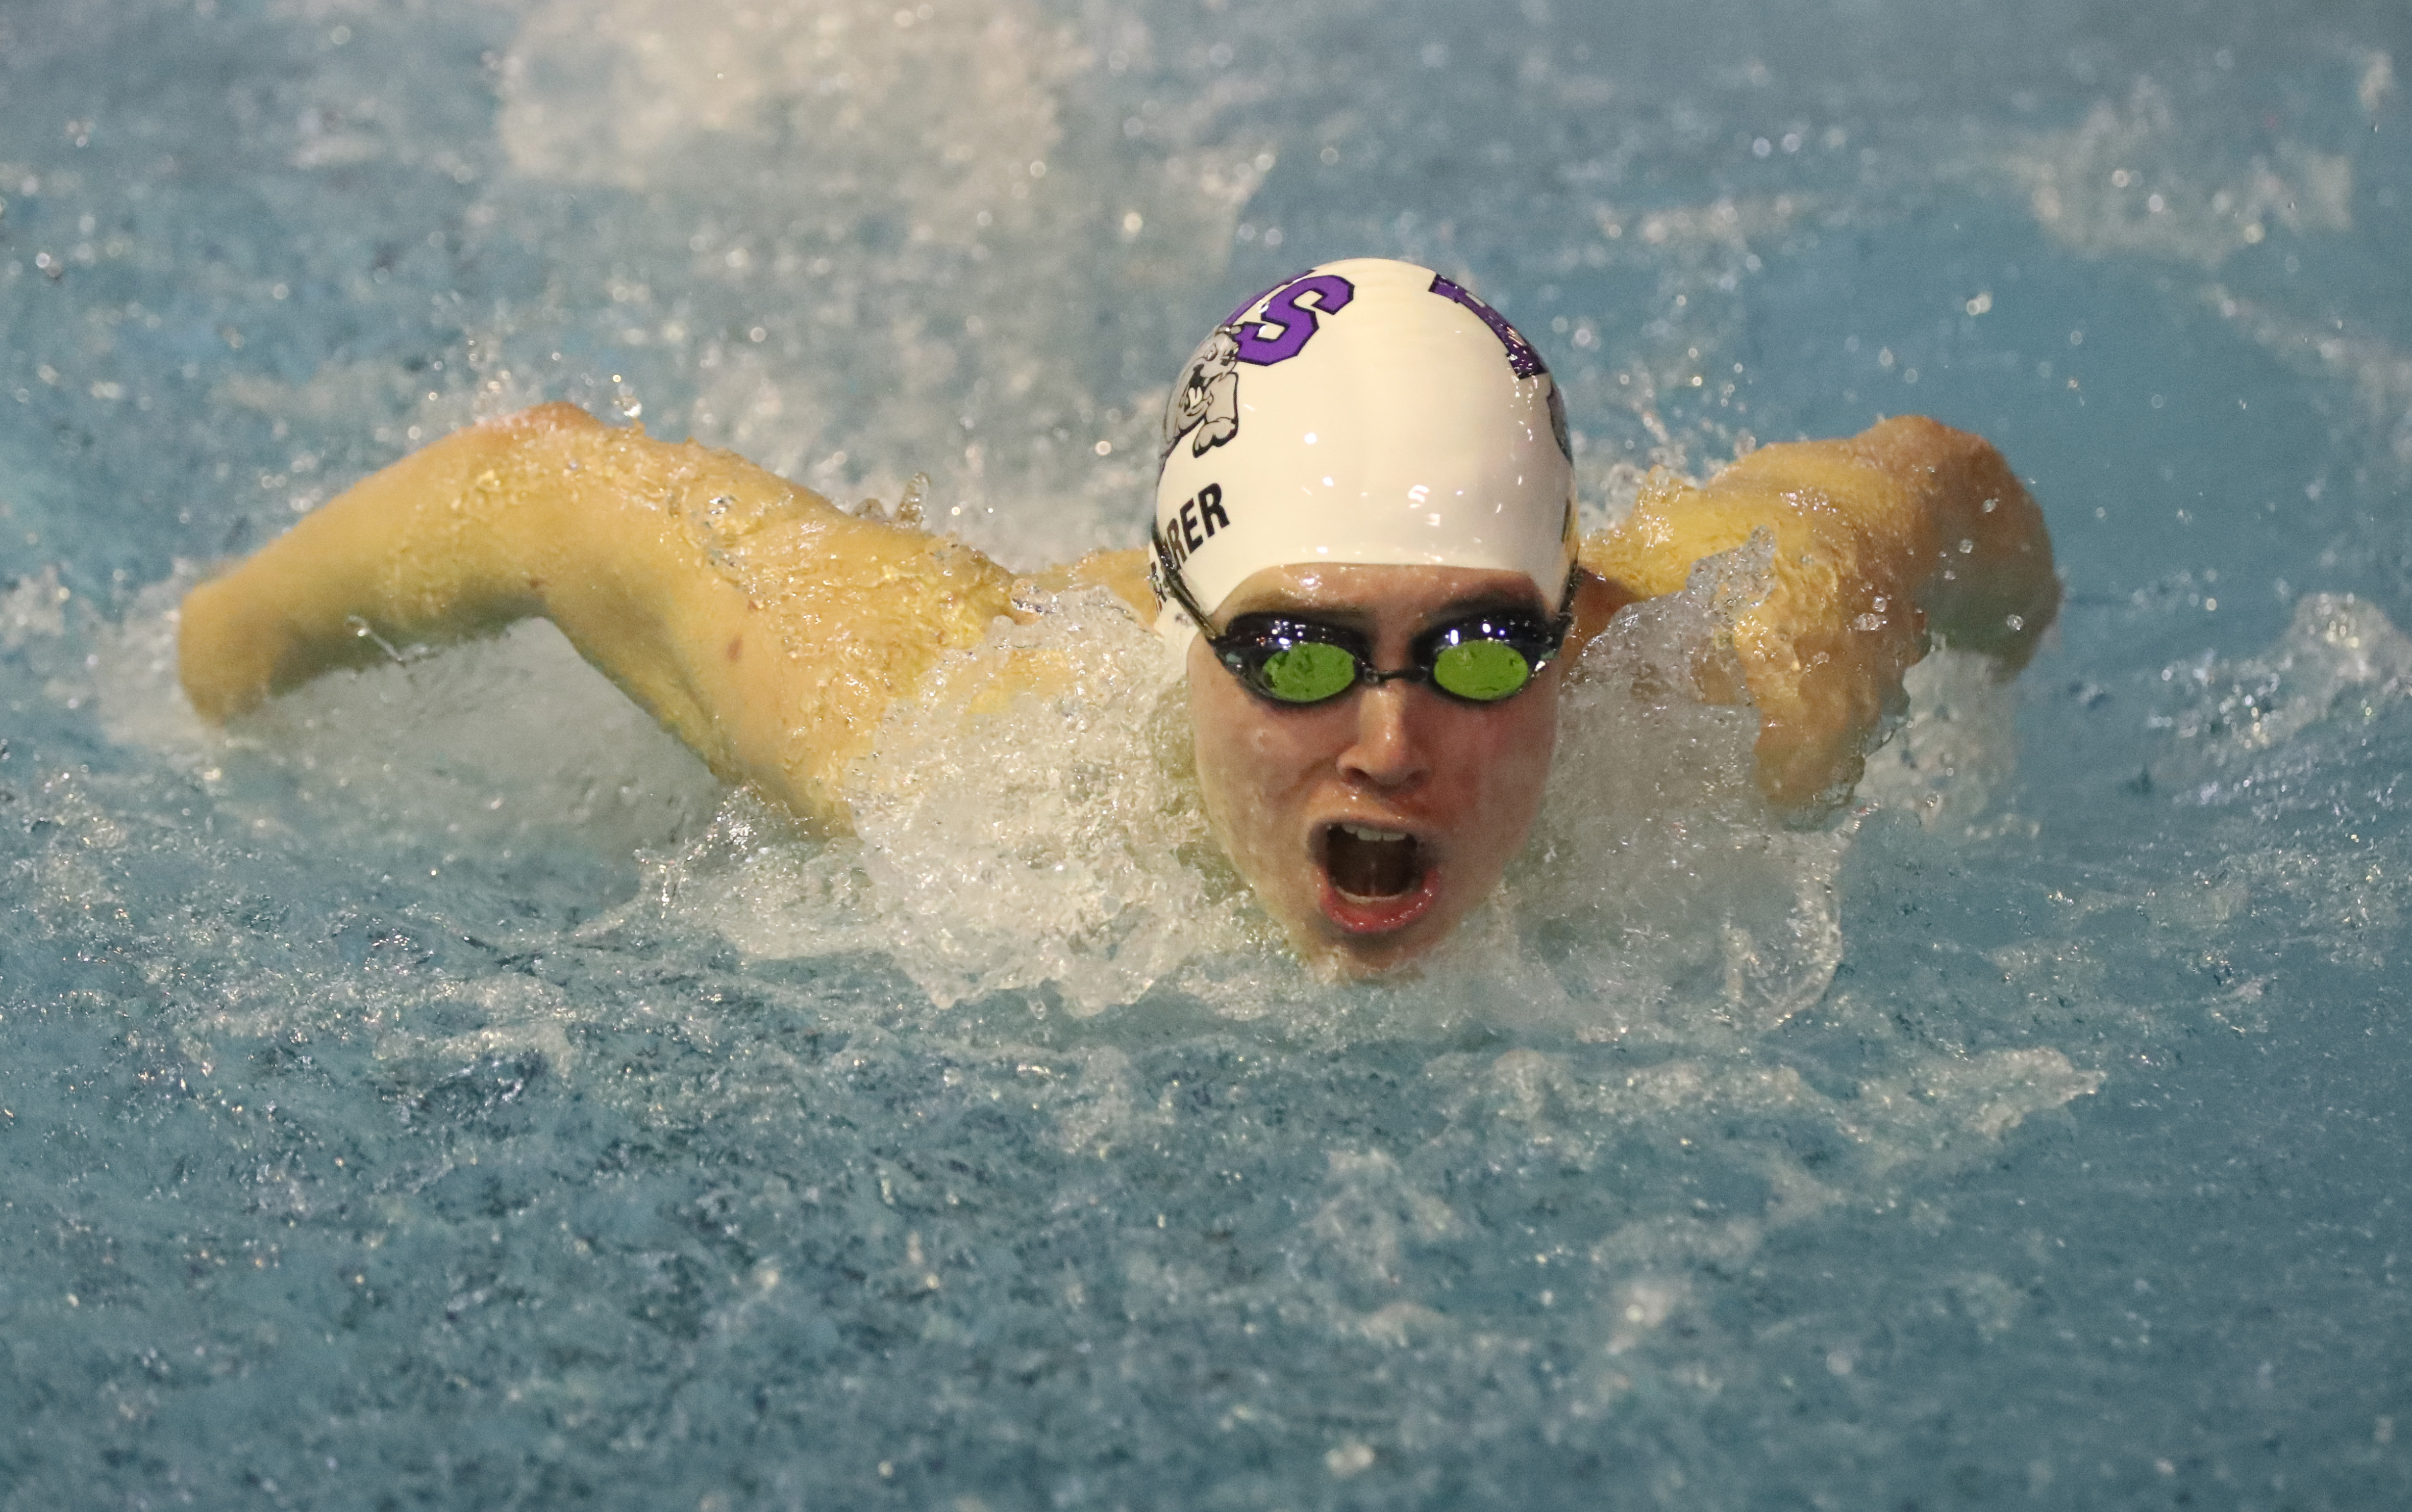 Hamburg's Michael Maurer holds Western New York's best time this season in the 200 individual medley. (James P. McCoy/Buffalo News)